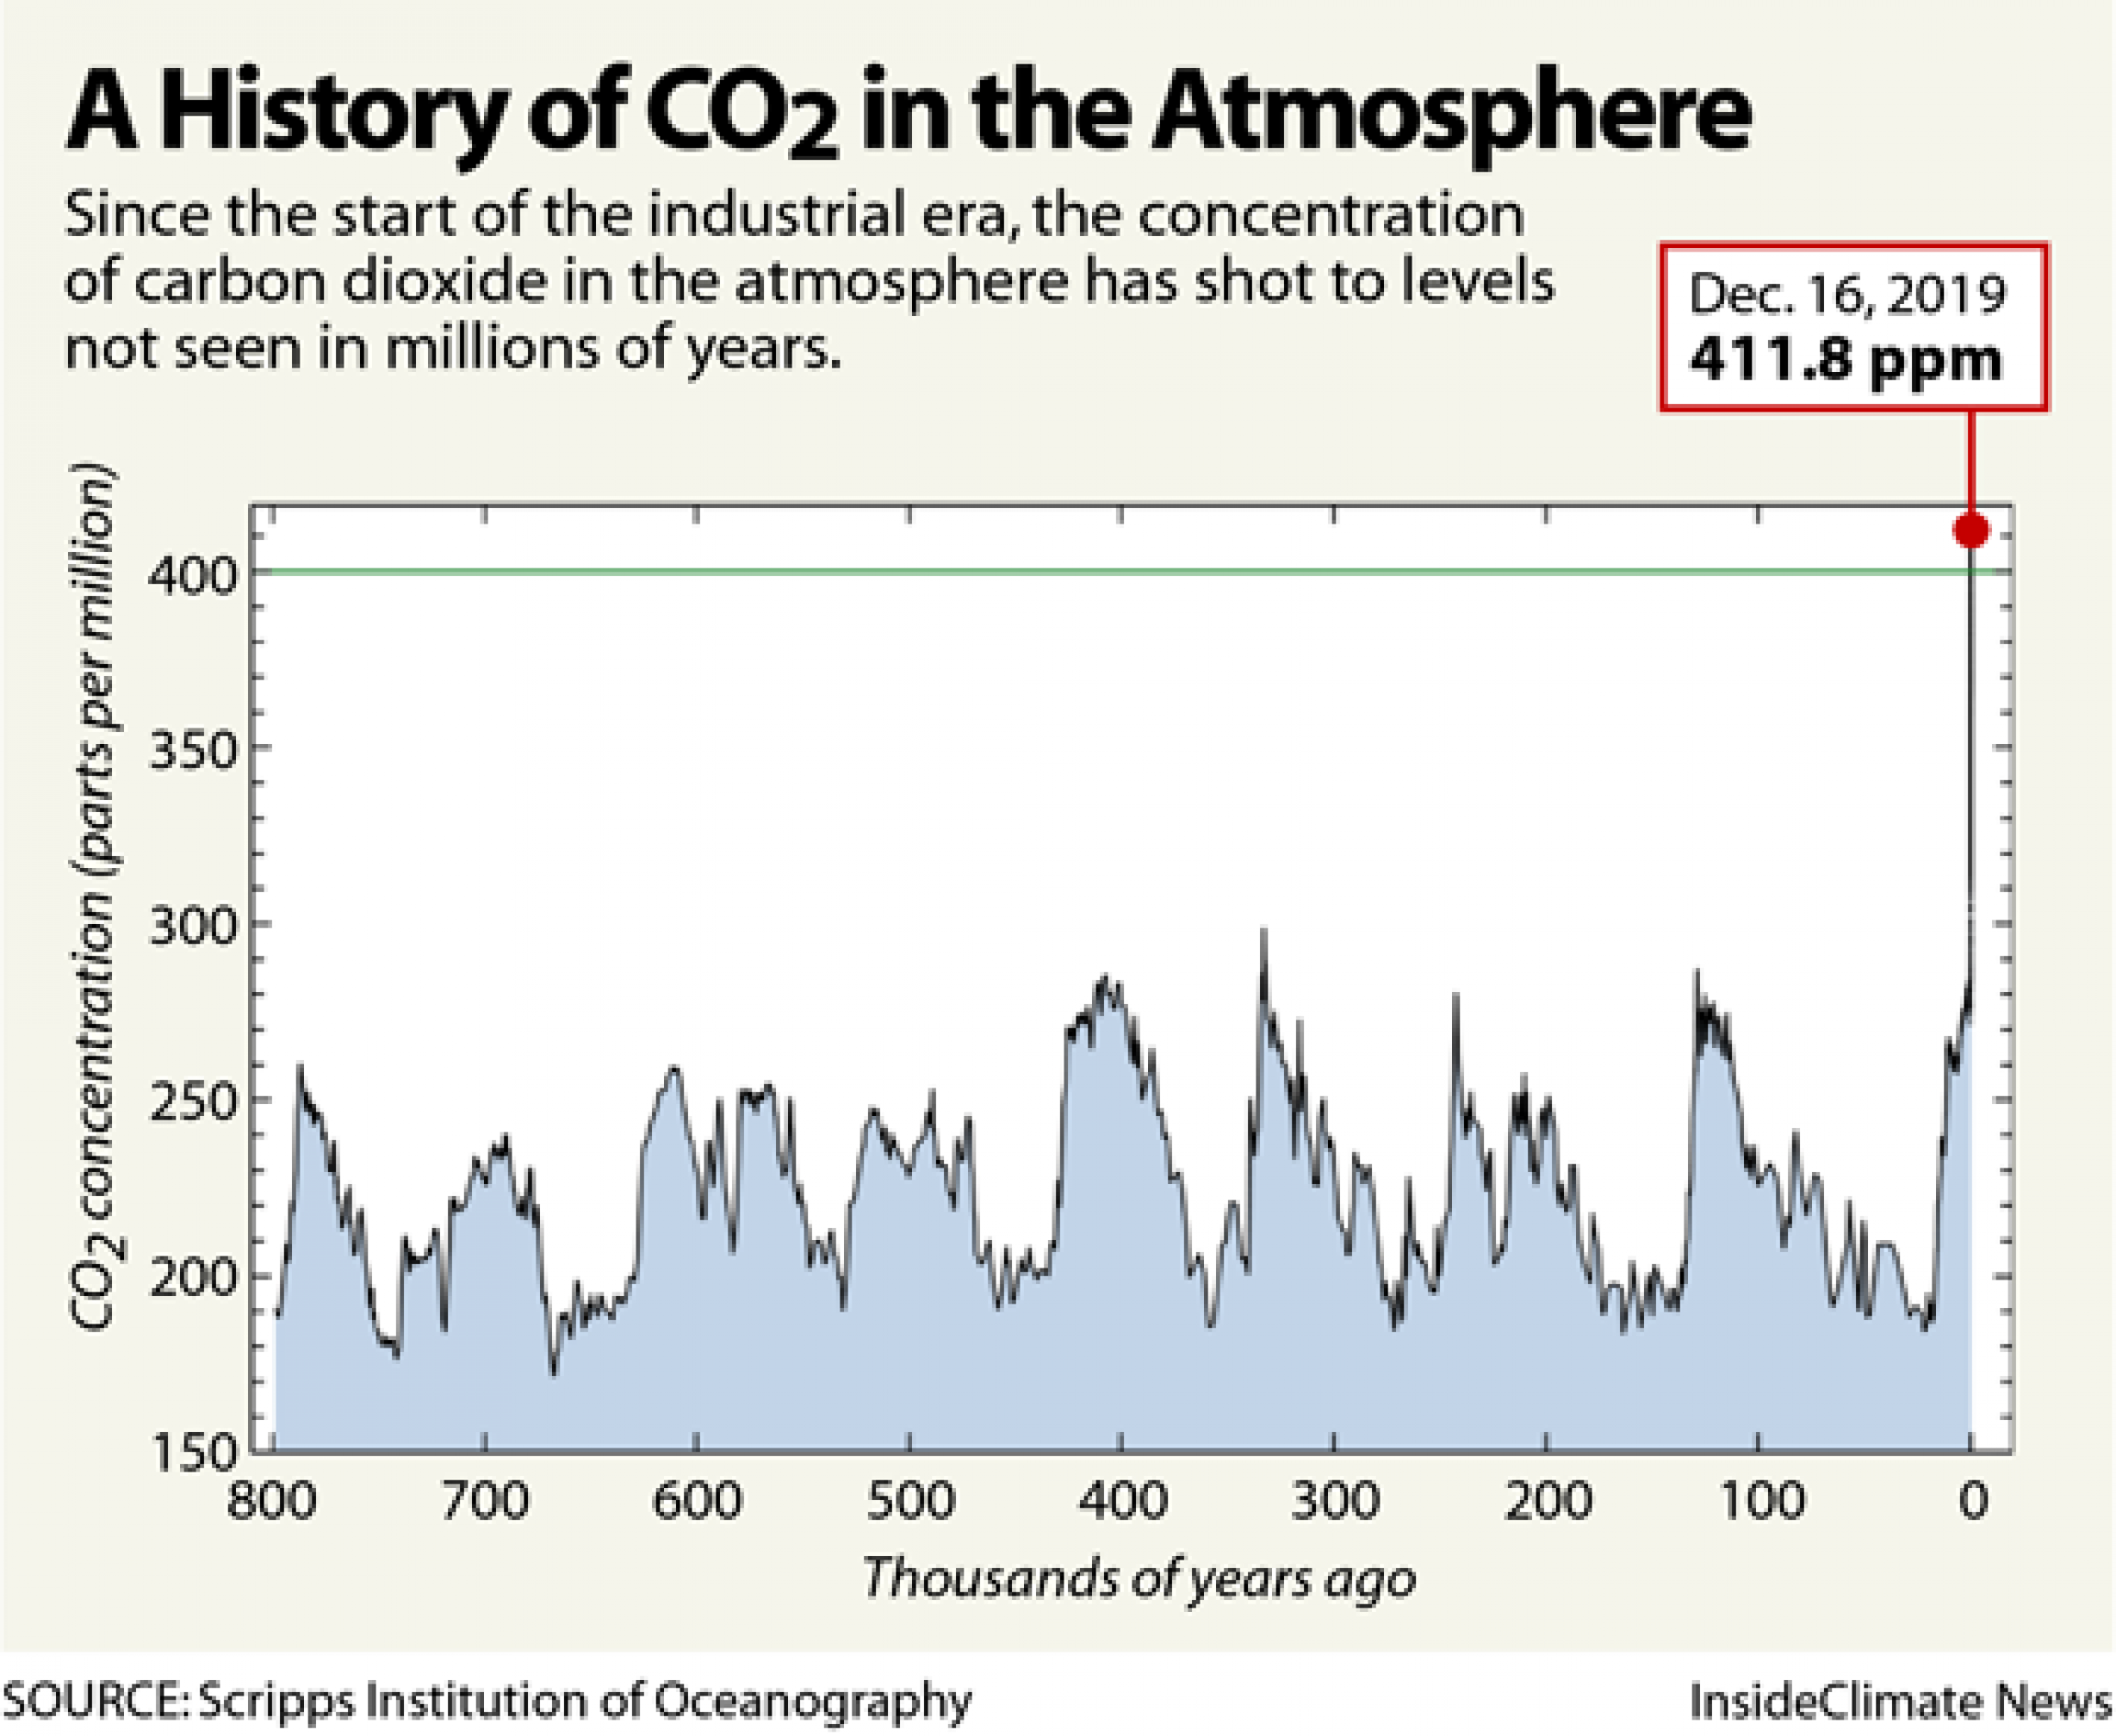 A graph showing CO2 concentrations over hundreds of years.